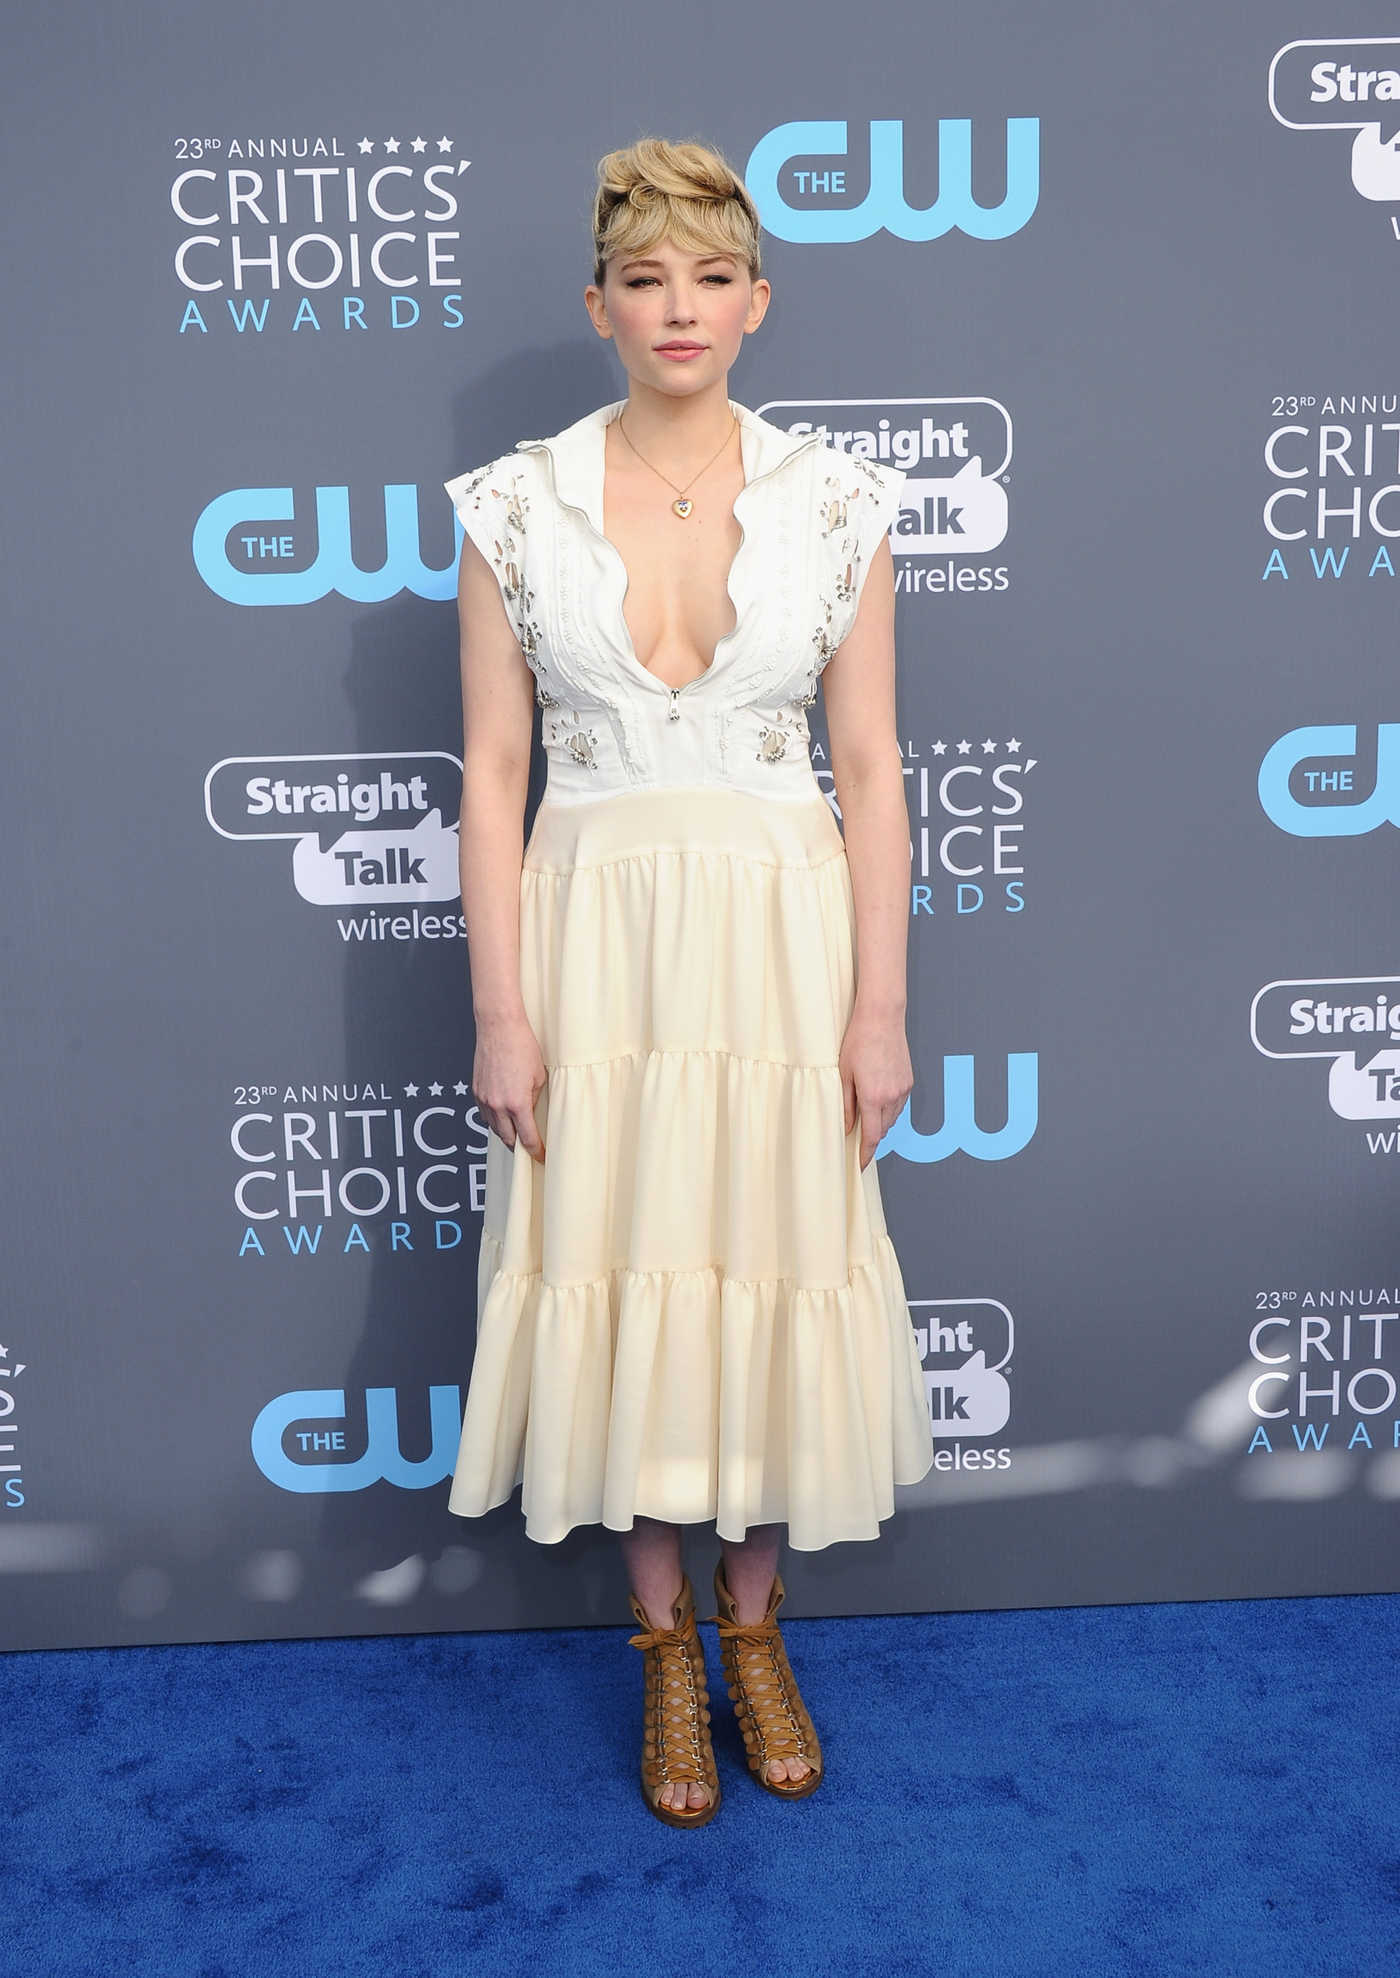 Haley Bennett at the 23rd Annual Critics' Choice Awards in Santa Monica 01/11/2018